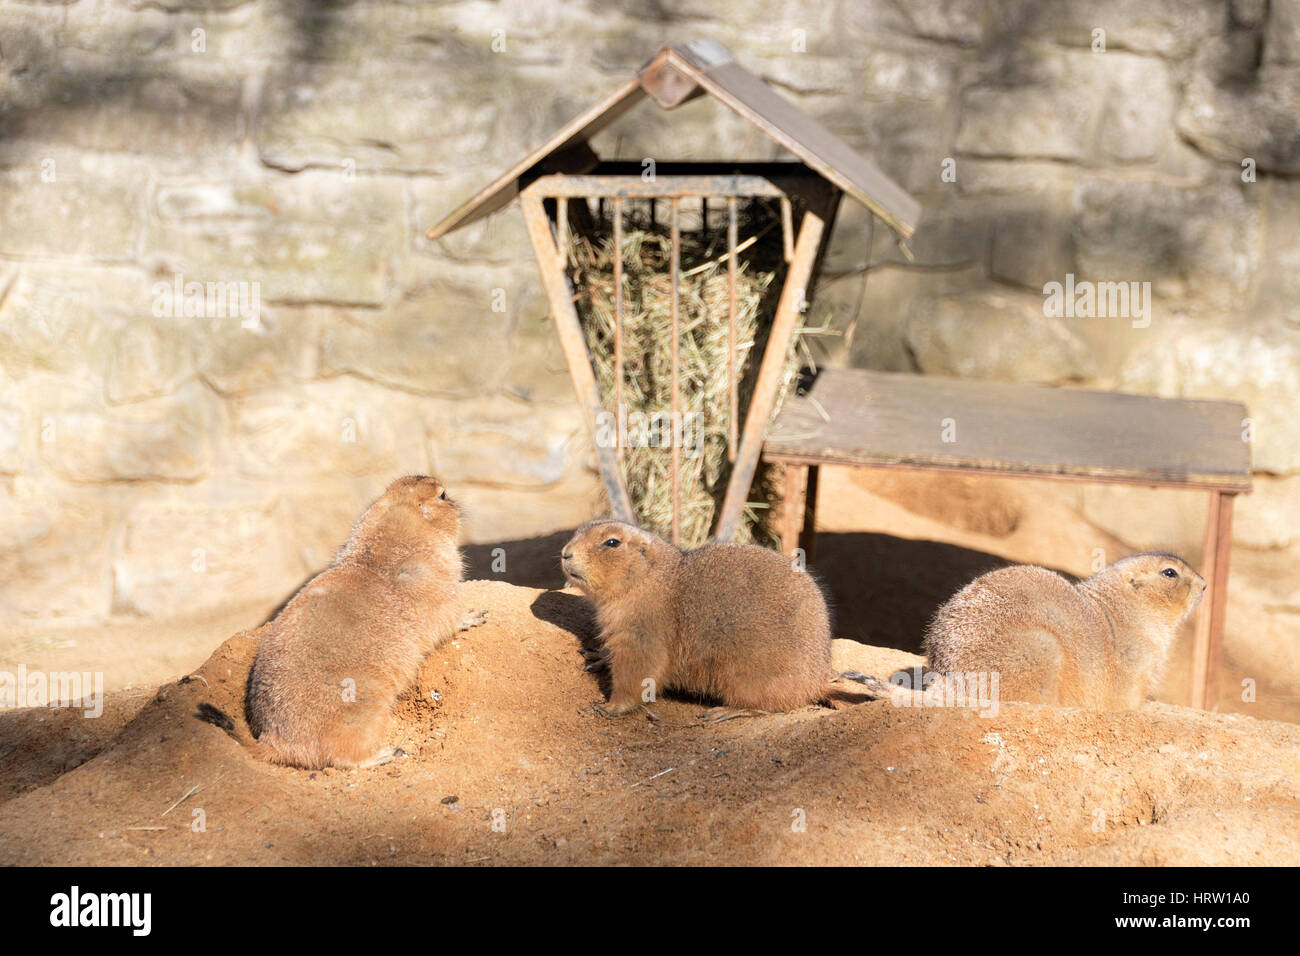 3 prairie dogs in their habitat in an European Zoo. Prairie dogs are herbivorous burrowing rodents native to the - Stock Image